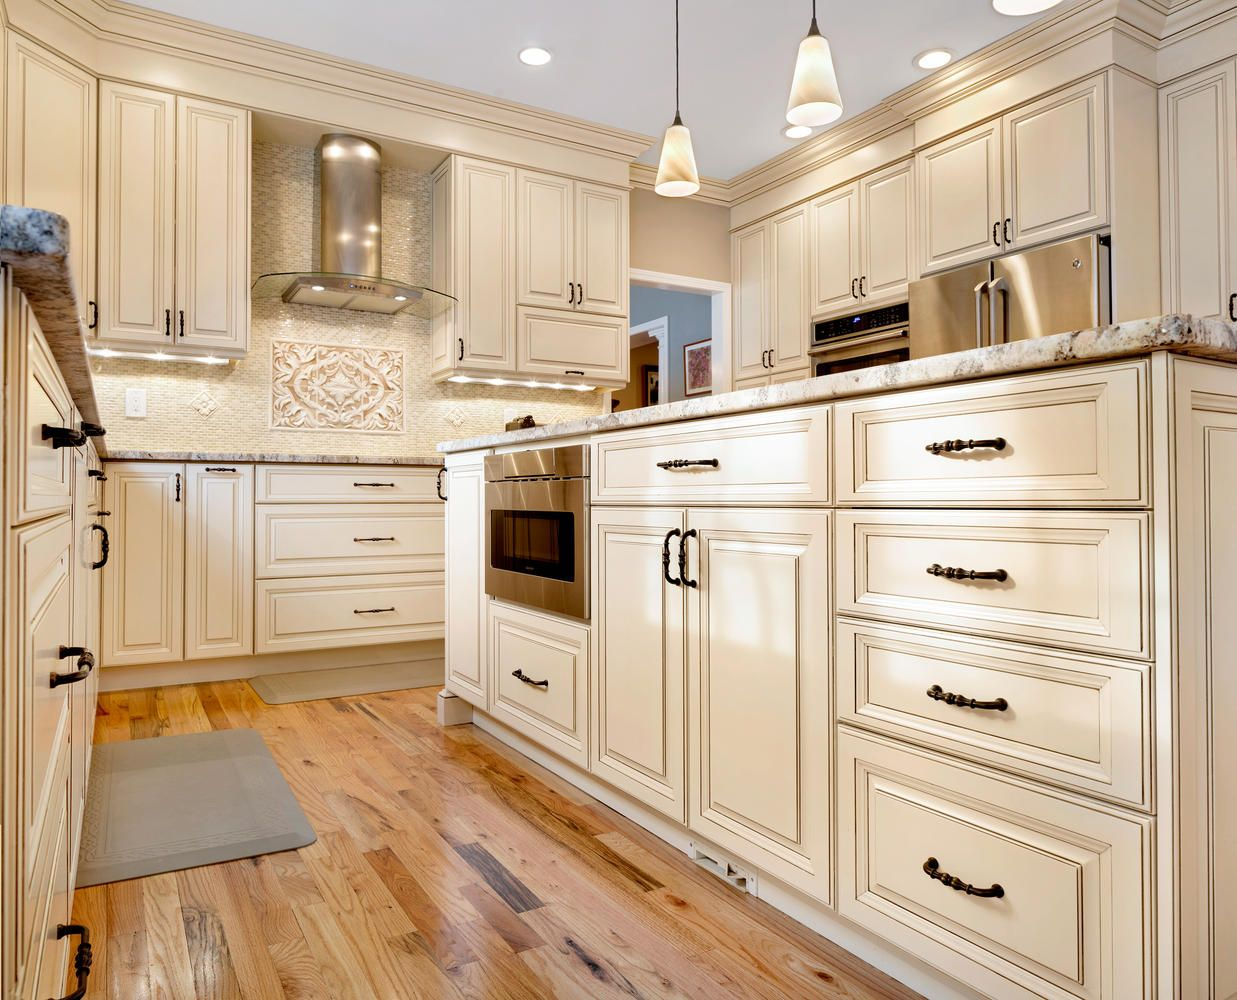 Sparkling Vision Wall New Jerseydesign Line Kitchens  Kitchen Classy Design Line Kitchens Decorating Design